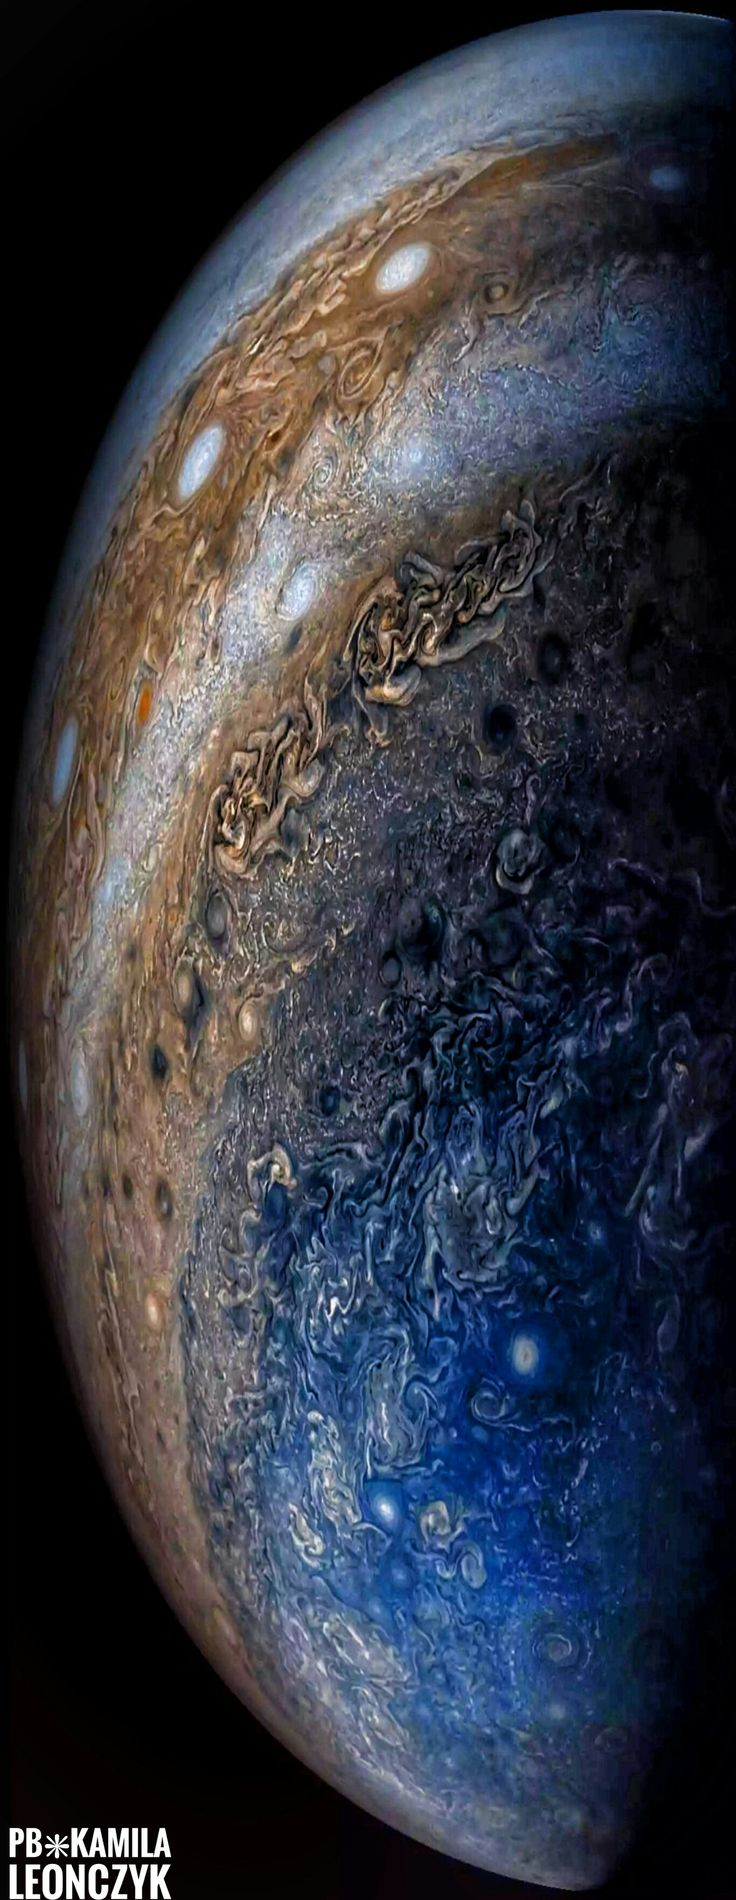 Jupiter is stranger than we knew. NASA's Juno spacecraft has now completed its sixth swoop past Jupiter as it moves around its highly ellipticalorbit. Pictured, Jupiter is seen from below where, surprisingly, the horizontal bands that cover most of the planet disappear into swirls and complex patterns. A line of white oval clouds is visible nearer to the equator. Recent results from Juno show that Jupiter's weather phenomena can extend deep below its cloud tops...